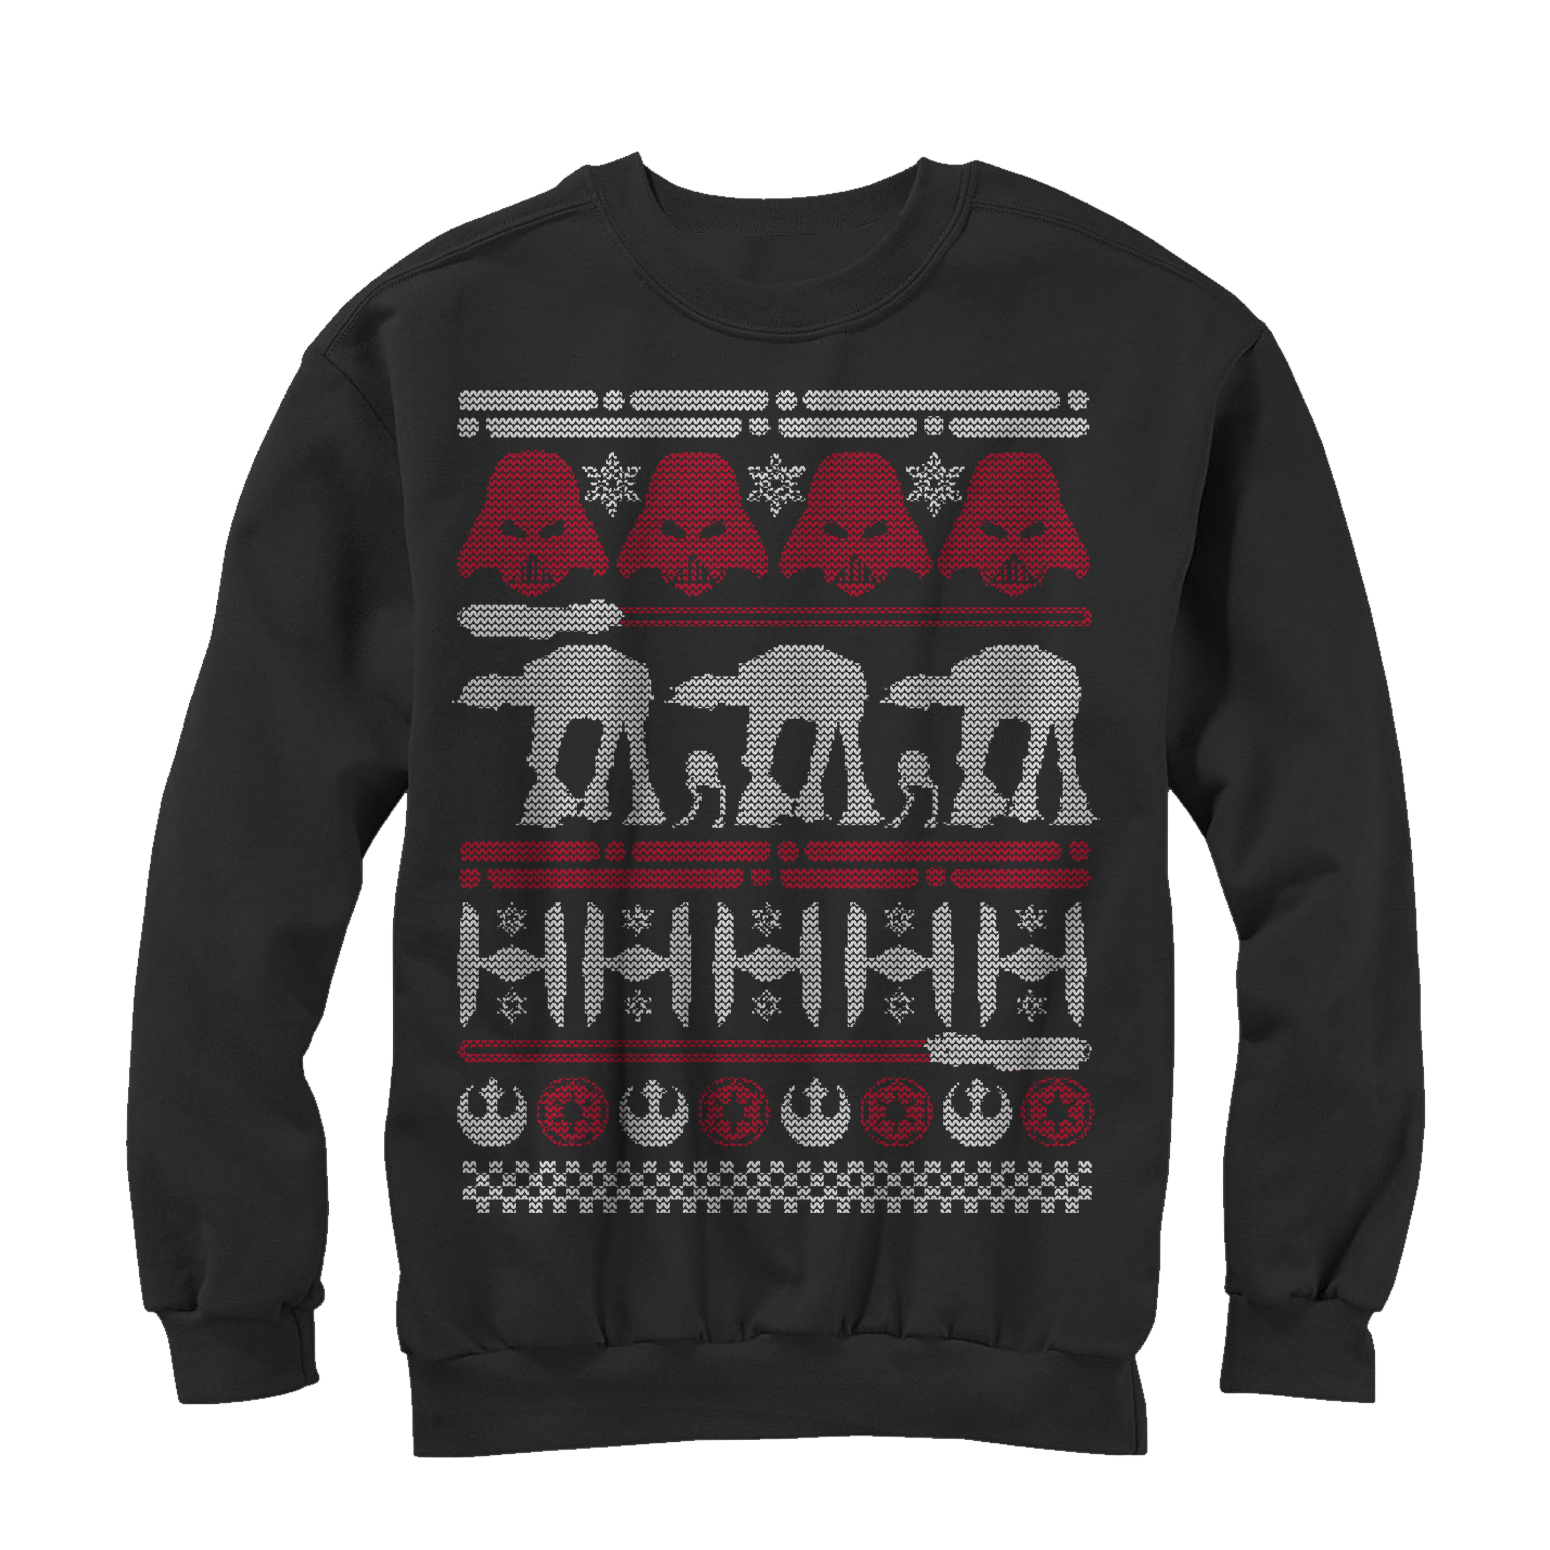 Star Wars Girls Ugly Christmas Sweater